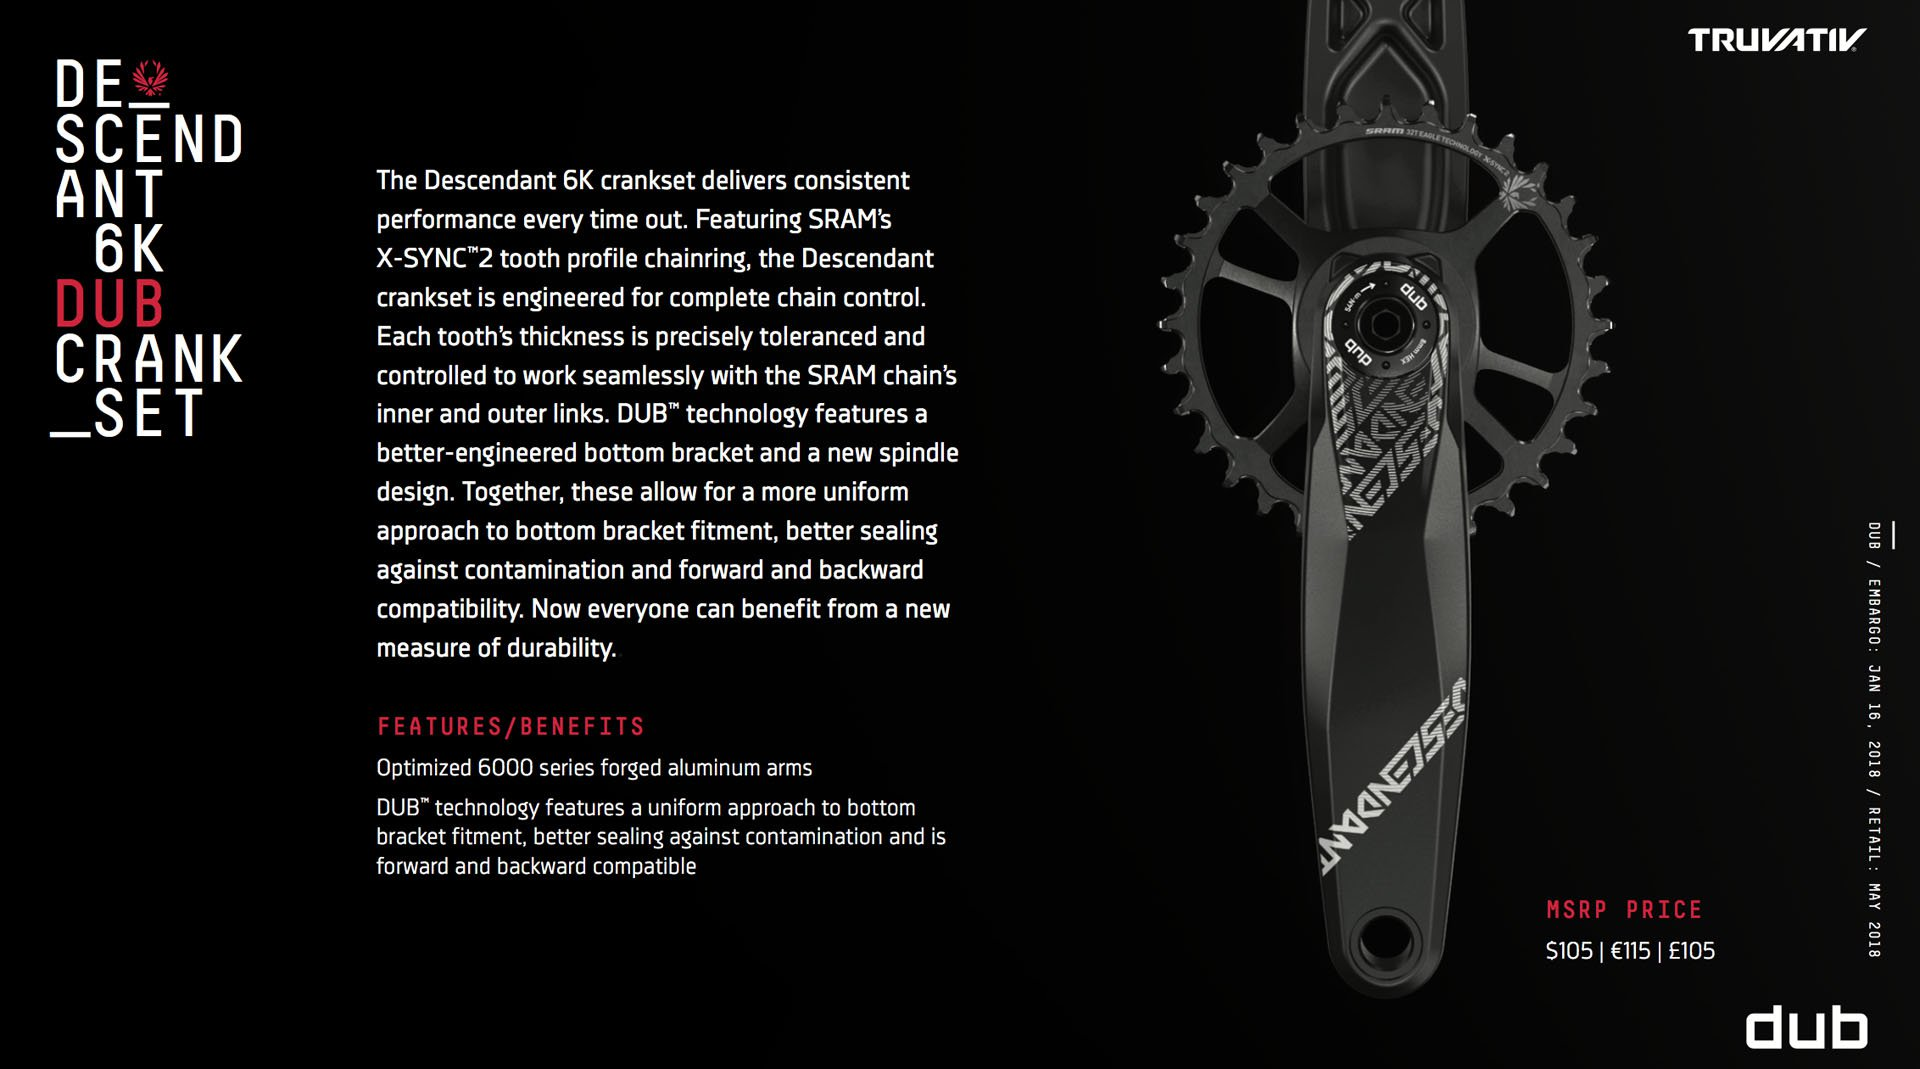 SRAM's goals were simplicity, durability and compatibility but no